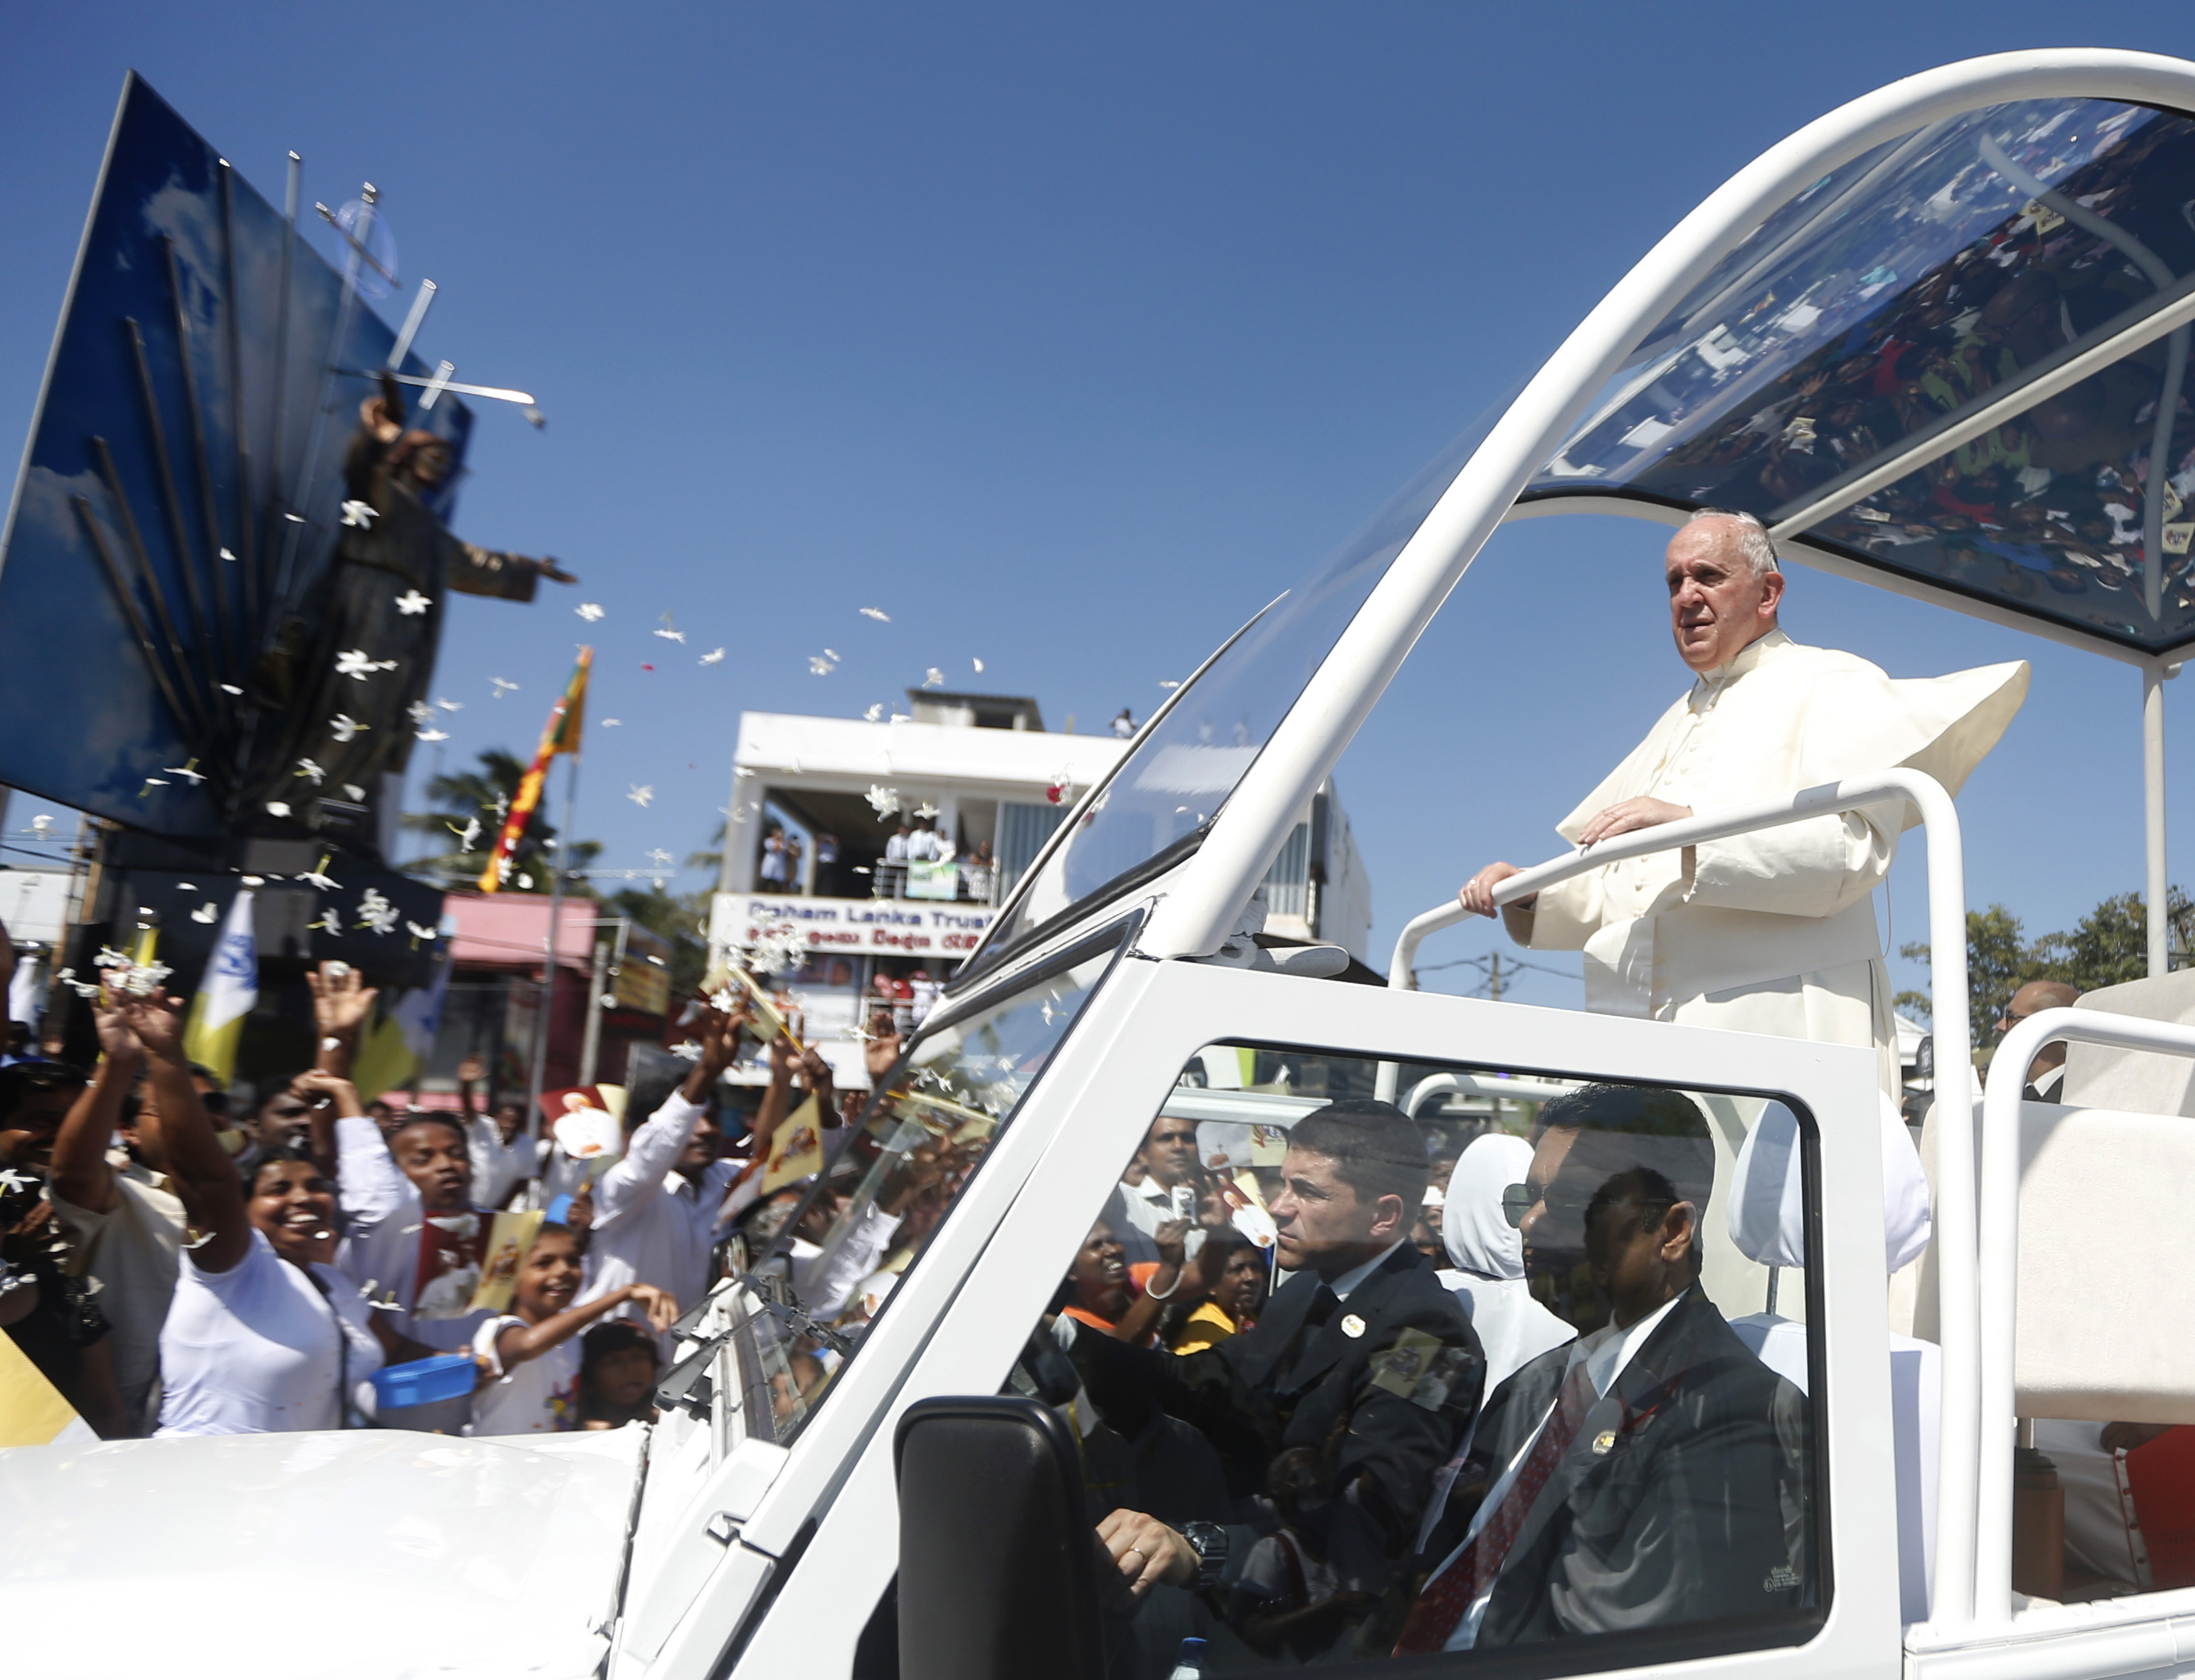 Pope Francis stands on his vehicle as devotees gather on the road to see him after he arrived at the Colombo airport Jan. 13, 2015